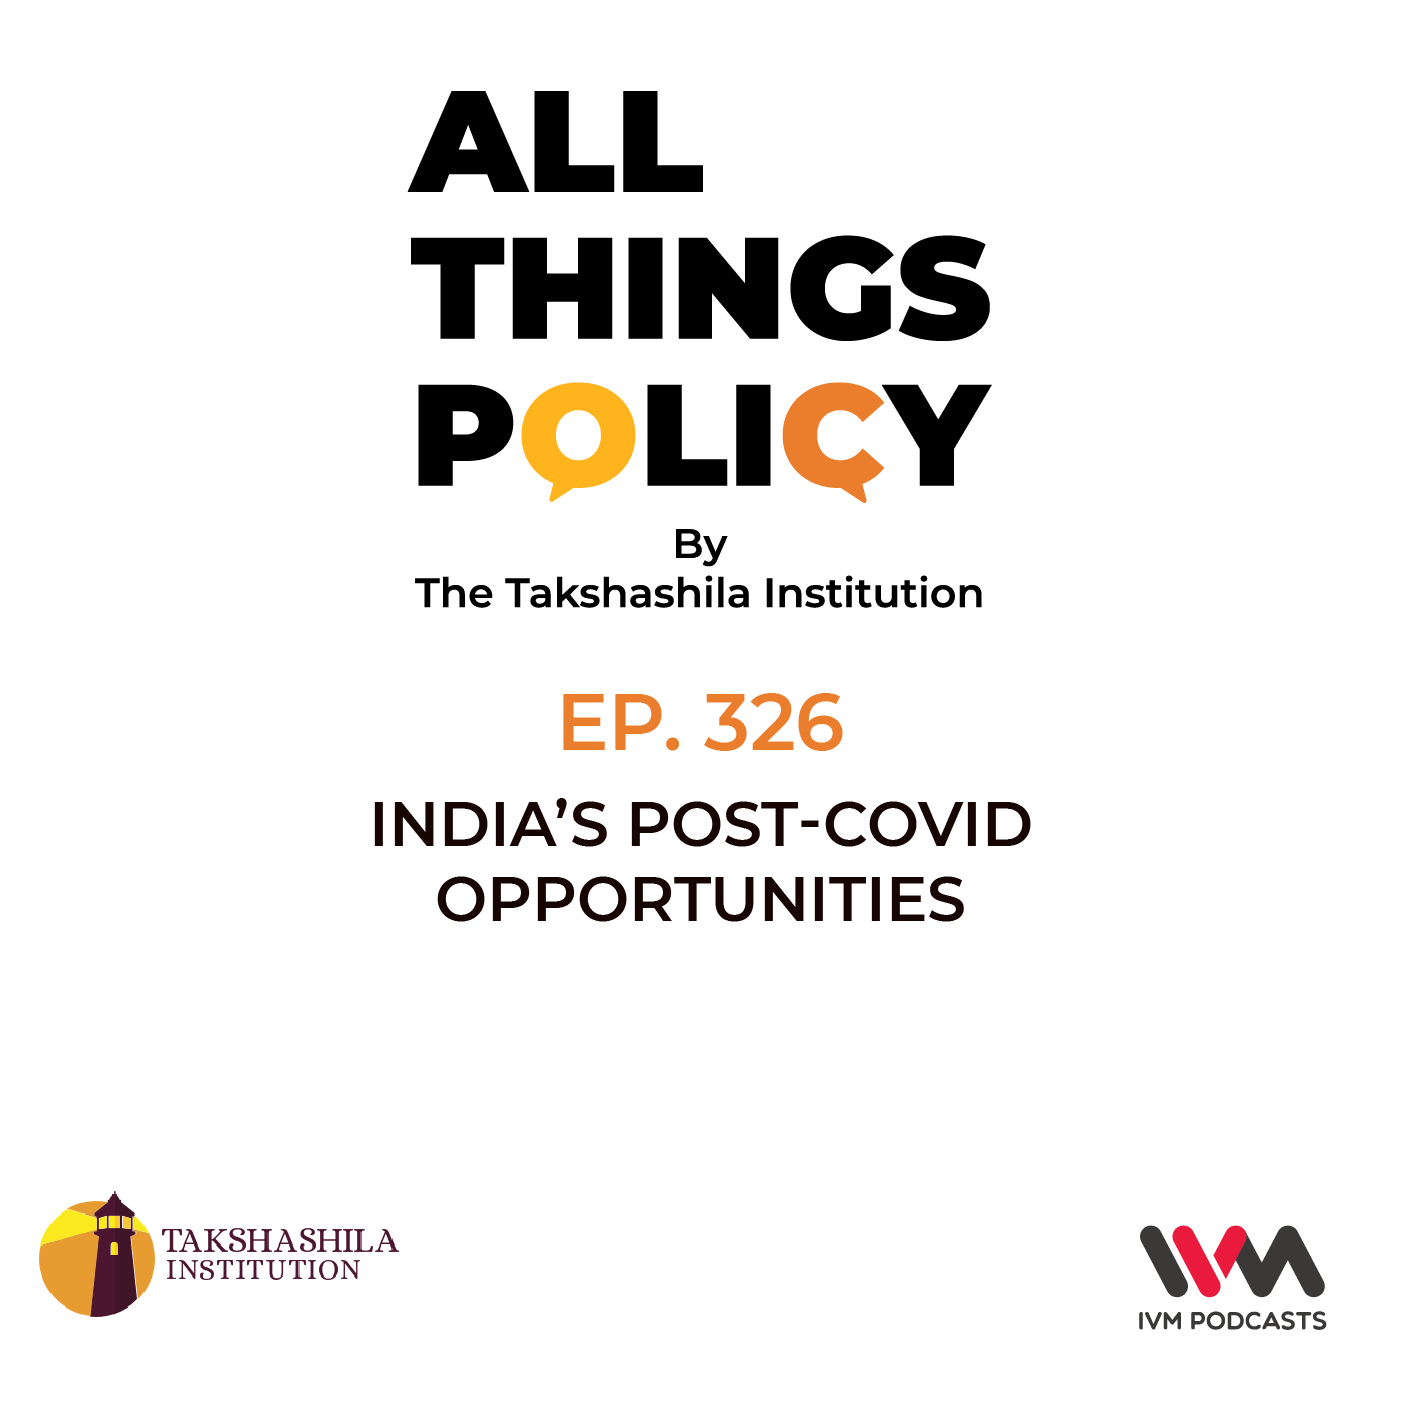 Ep. 326: India's Post-Covid Opportunities